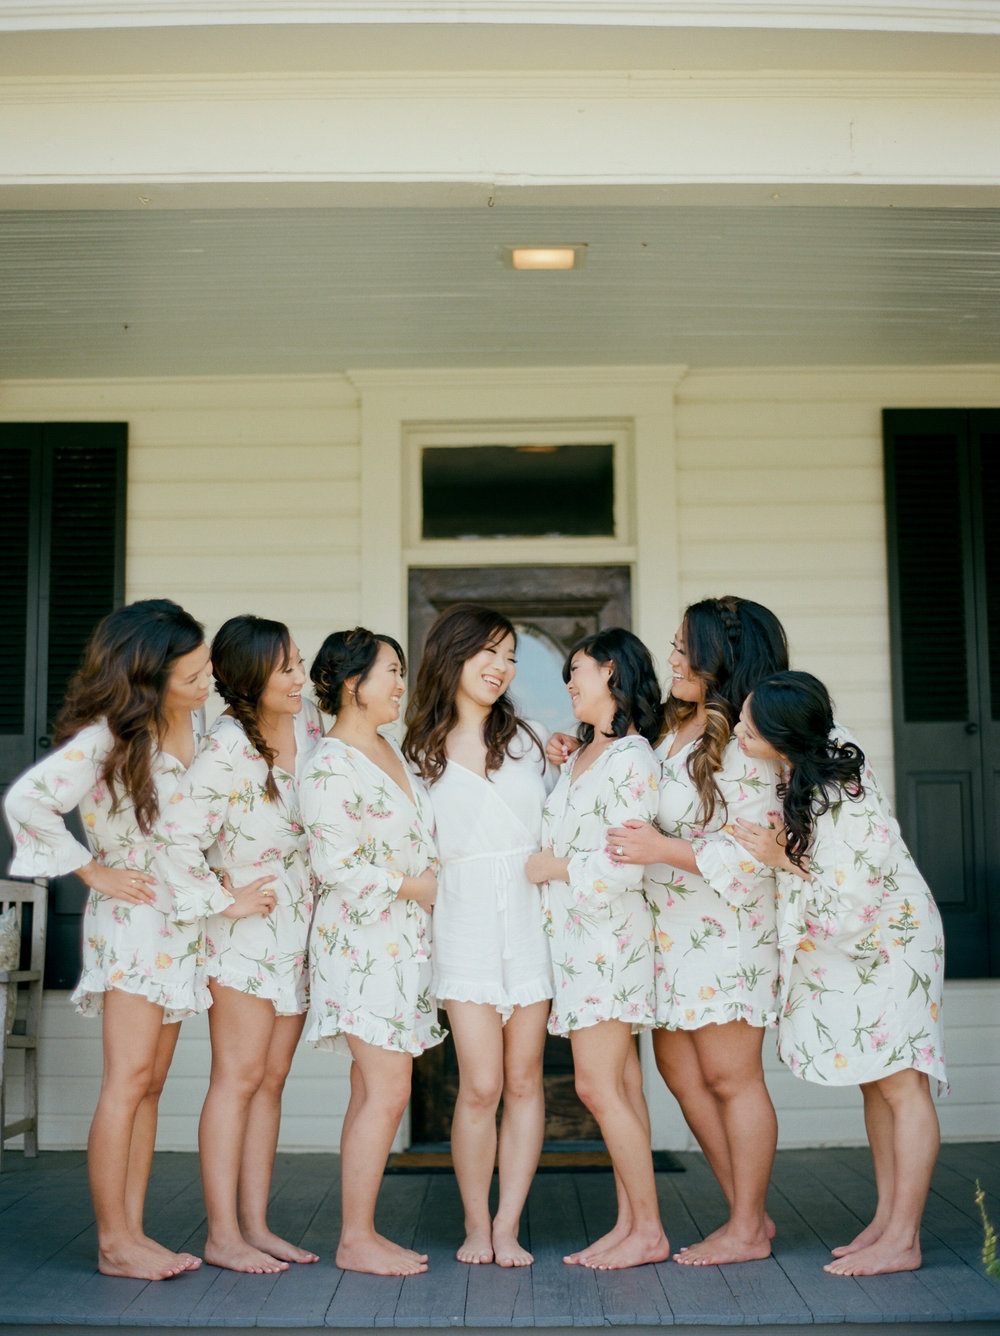 The-Knot-50-Weddings-50-States-Texas-Winner-Dana-Fernandez-photography-houston-wedding-photographer-film-fine-art-destination-7.jpg